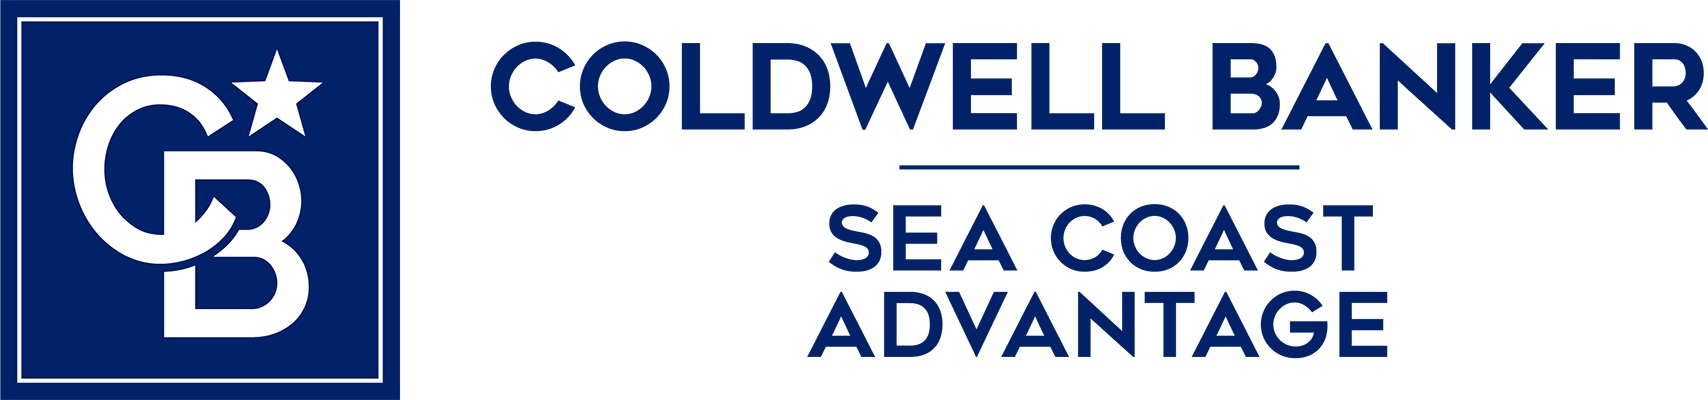 Kelly Kiernan - Coldwell Banker Sea Coast Advantage Realty Logo